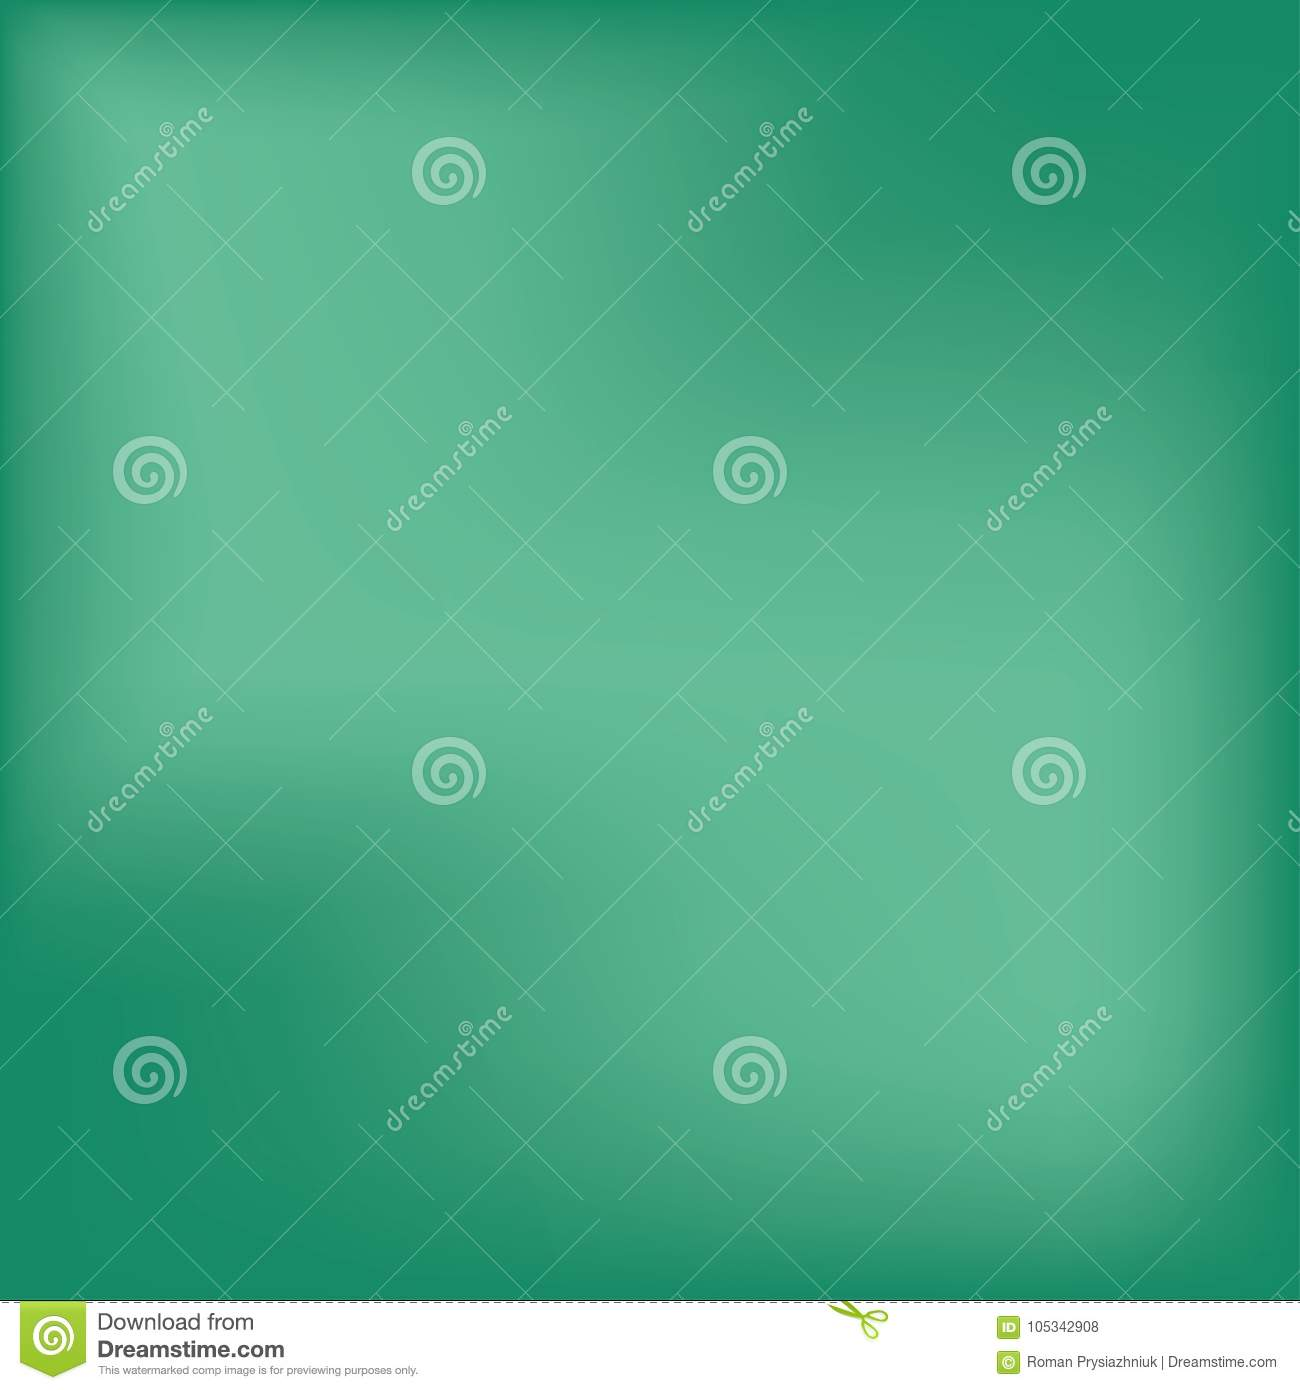 Green abstract background texture with gradient green backdrop download green abstract background texture with gradient green backdrop for greeting cards and websites m4hsunfo